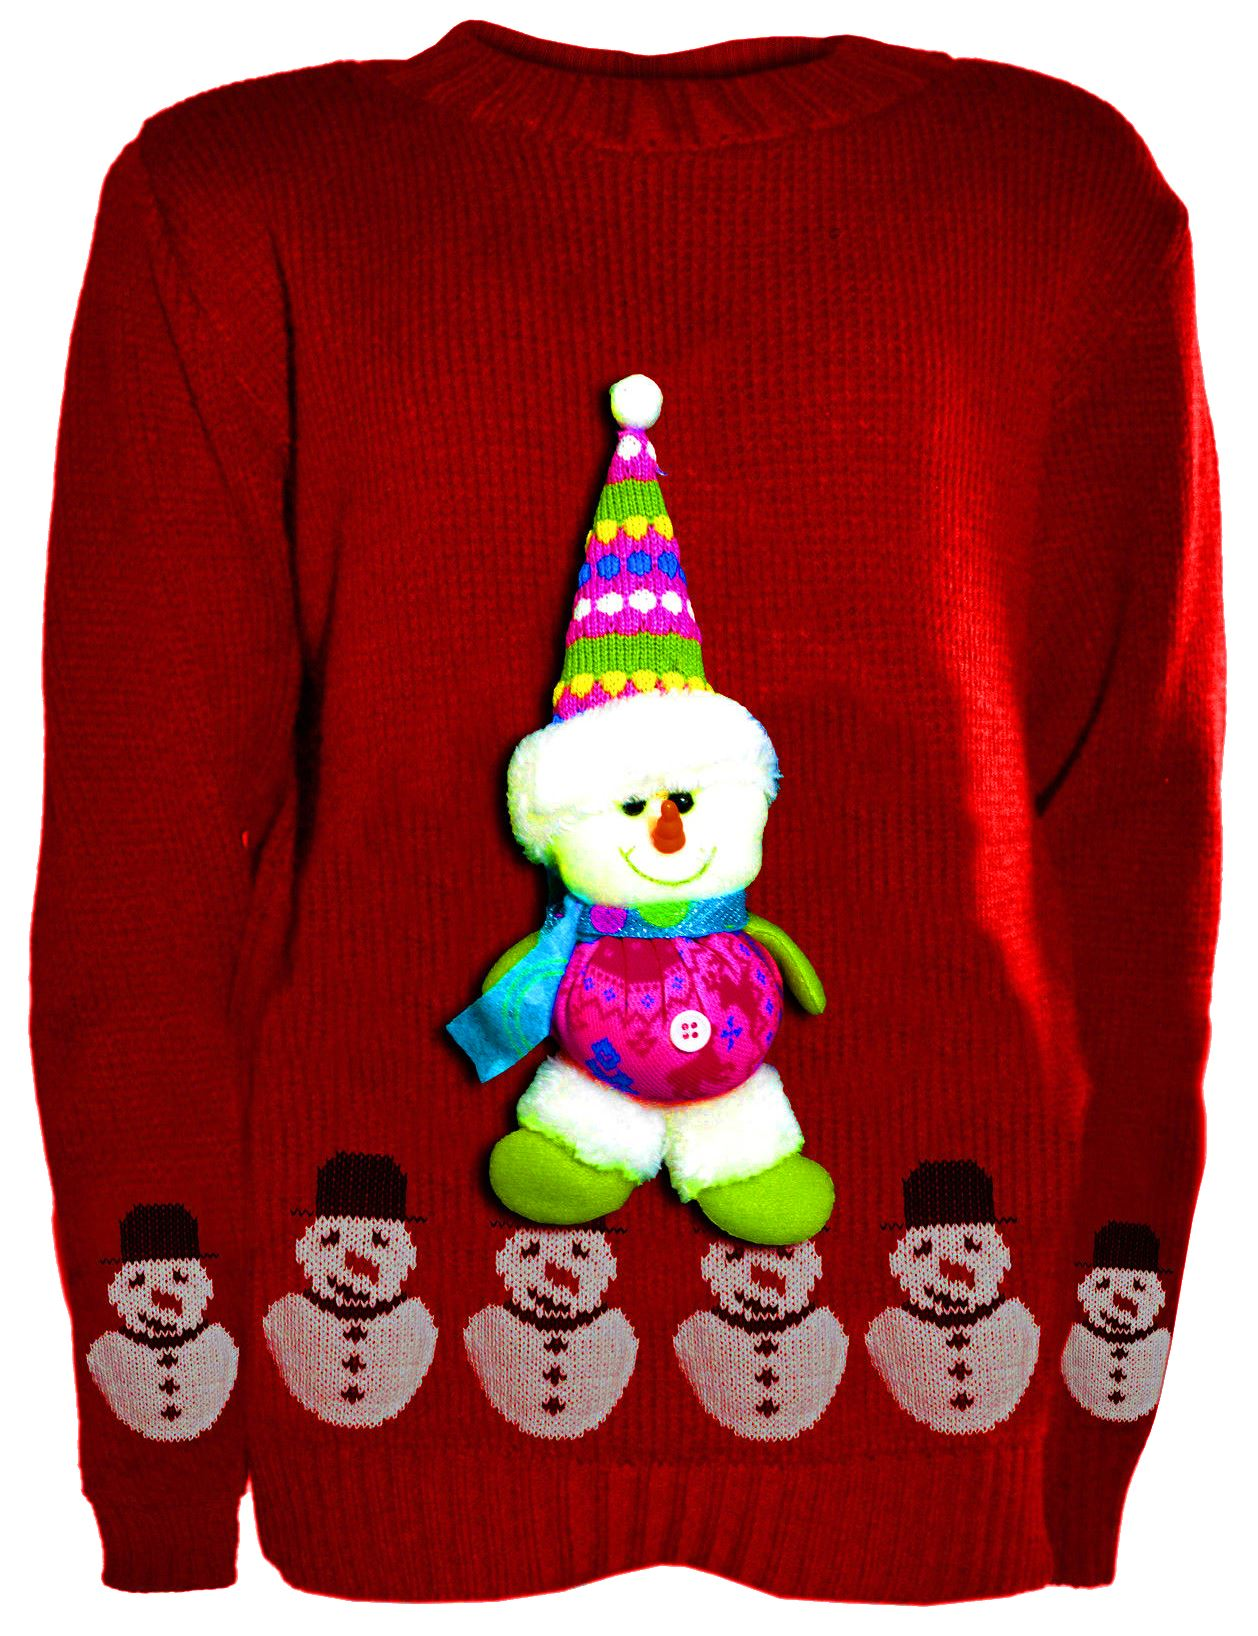 Knitting Patterns For Novelty Christmas Jumpers : Girls Boys 3d Teddy Novelty Kids Christmas Unisex Winter Knitted Sweater Jumpers